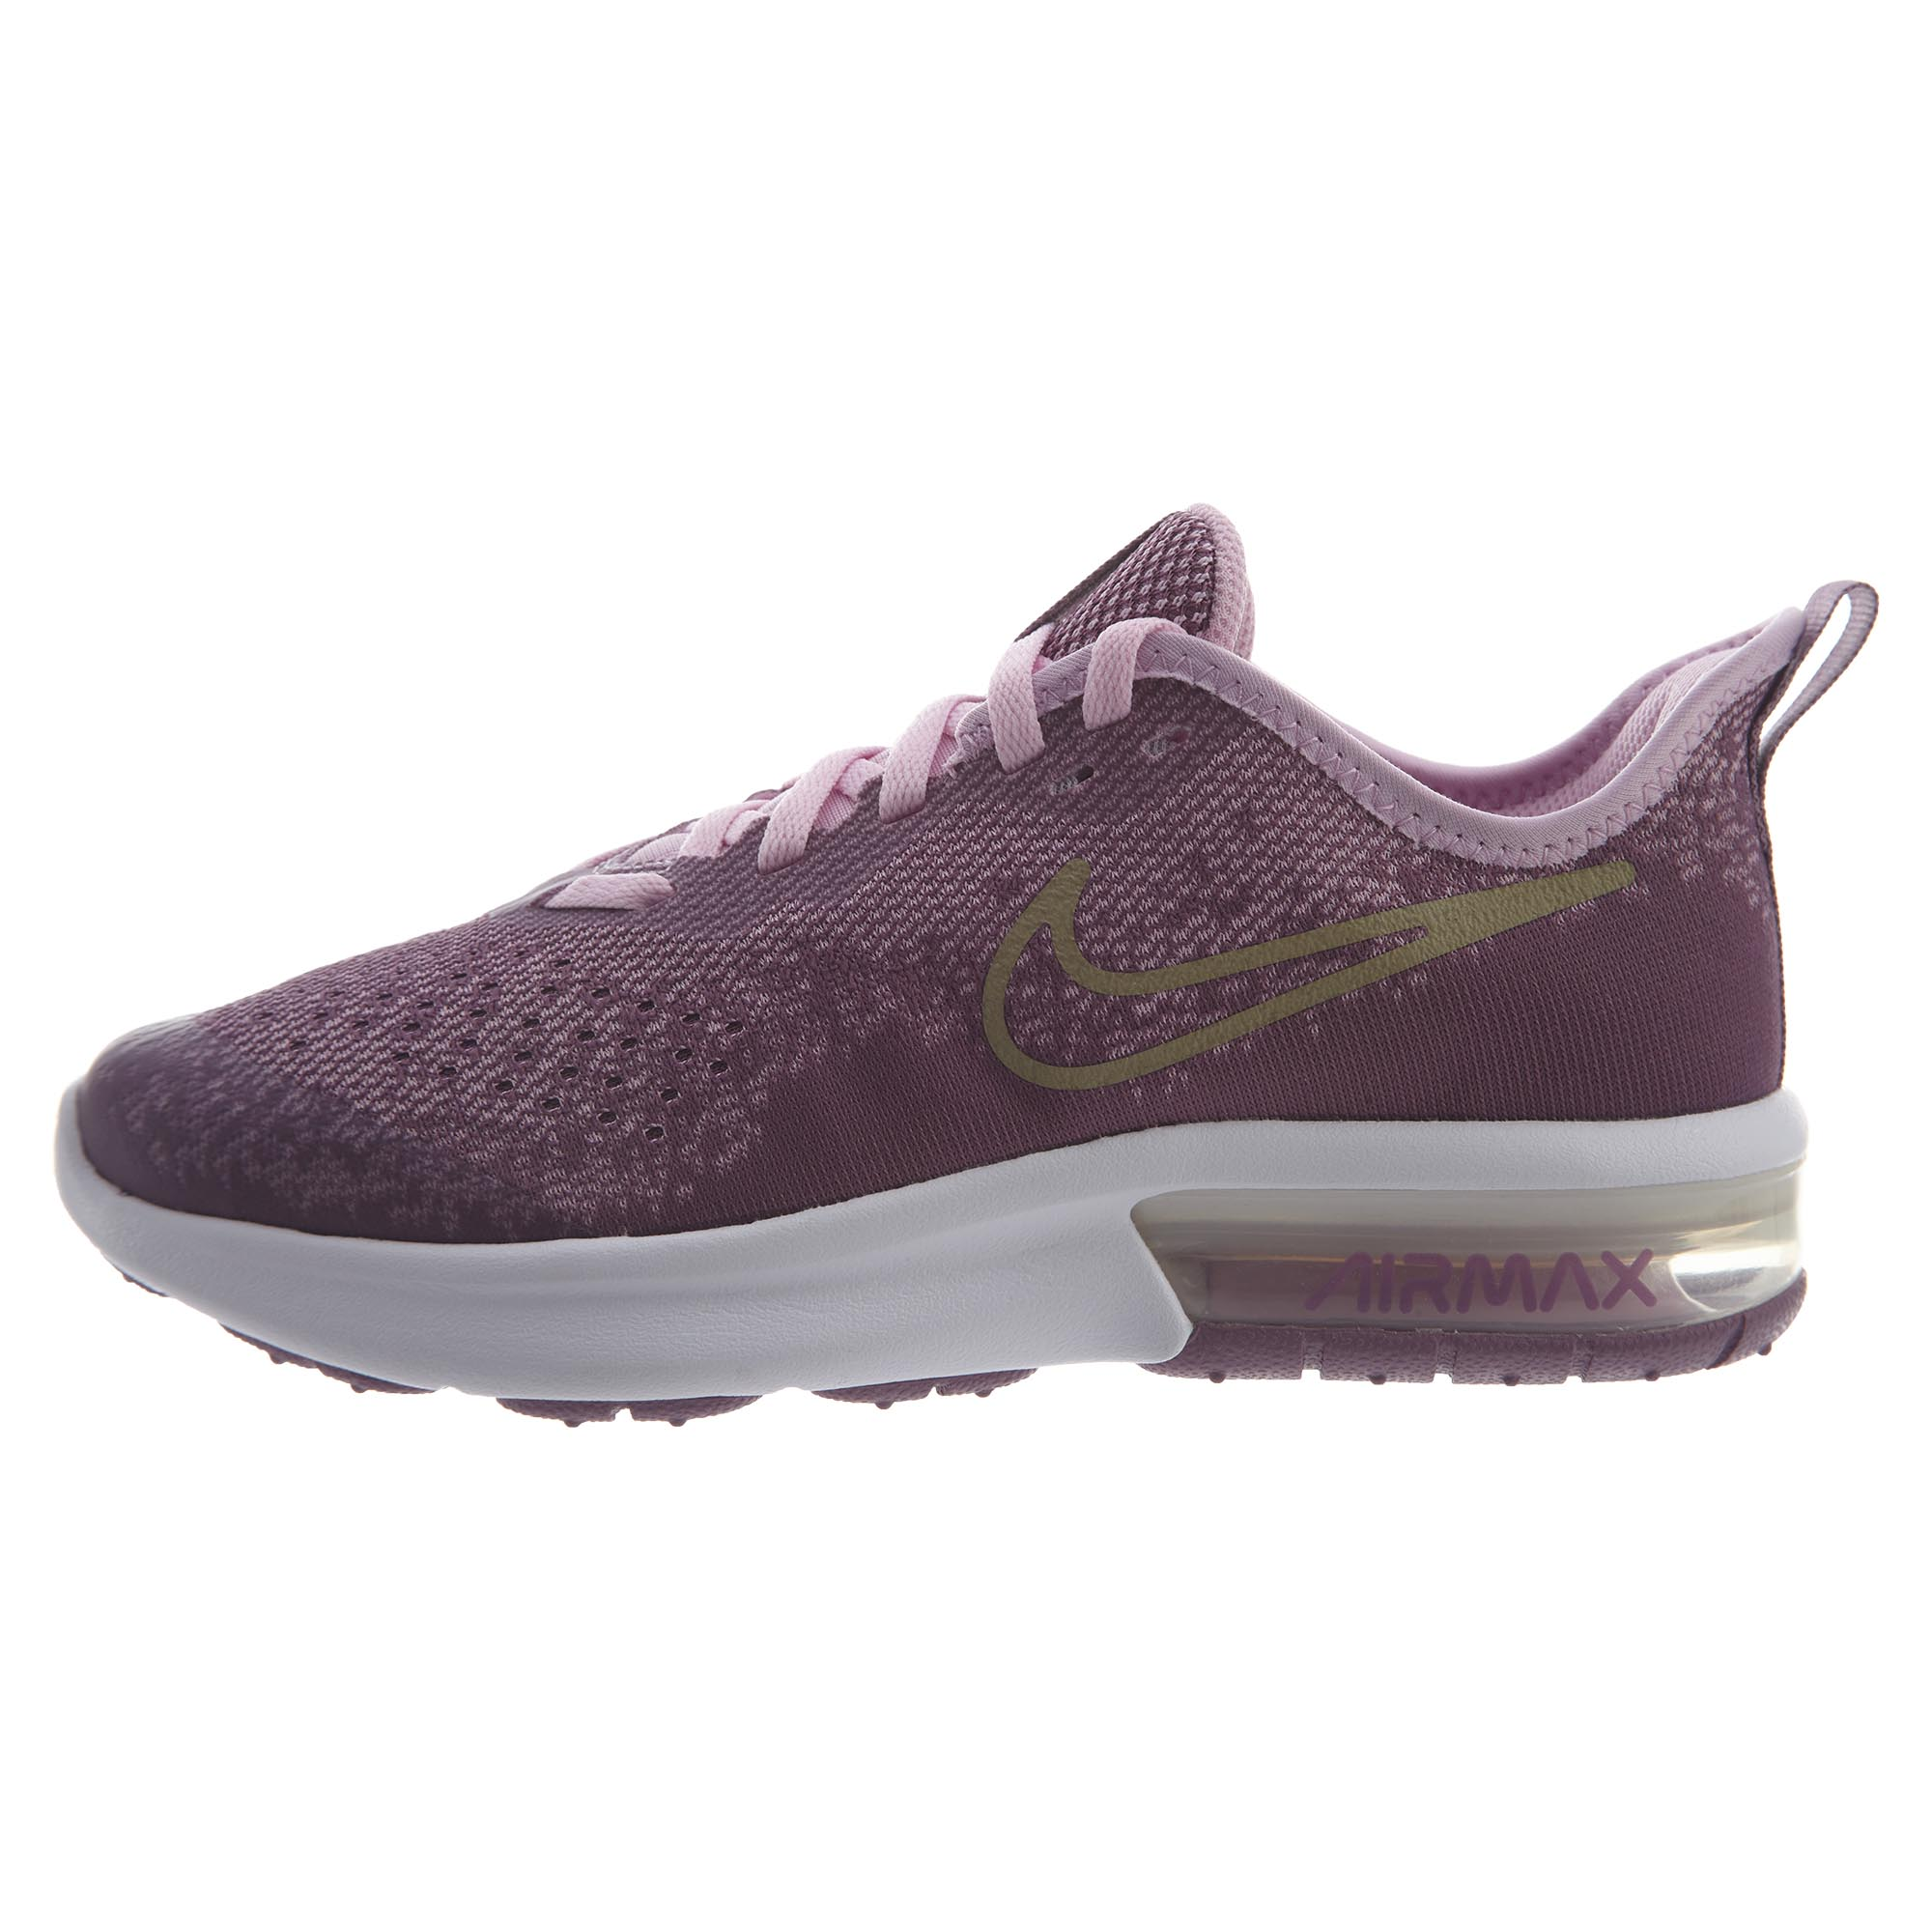 65a8cb89a56c Details about Nike Big Kids Air Max Sequent 4 Running Shoes AQ2245-501